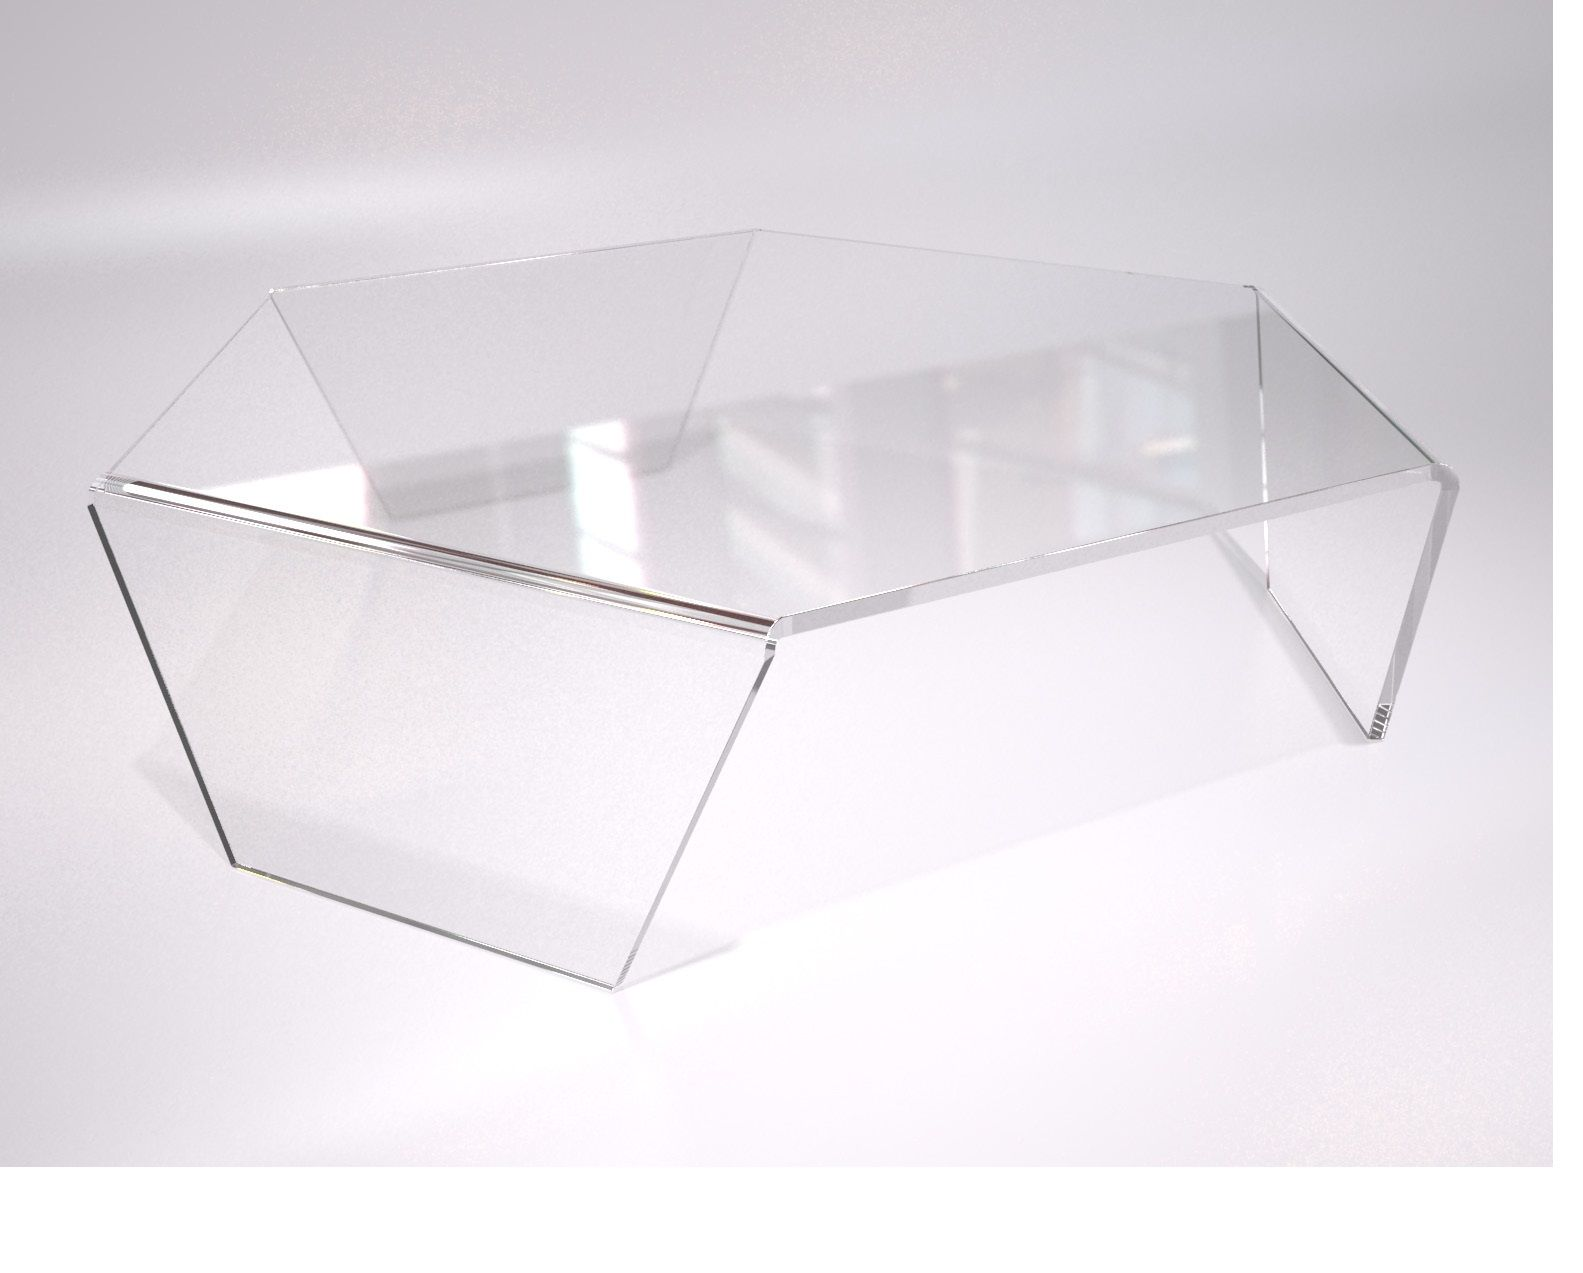 Clear Plexiglas Acrylic Hexagonal Coffee Table Bent To Shape This Table Design Option Is Manufactured In High Quality Clear Plexiglas Acrylic With All Edges Dia [ 1273 x 1583 Pixel ]